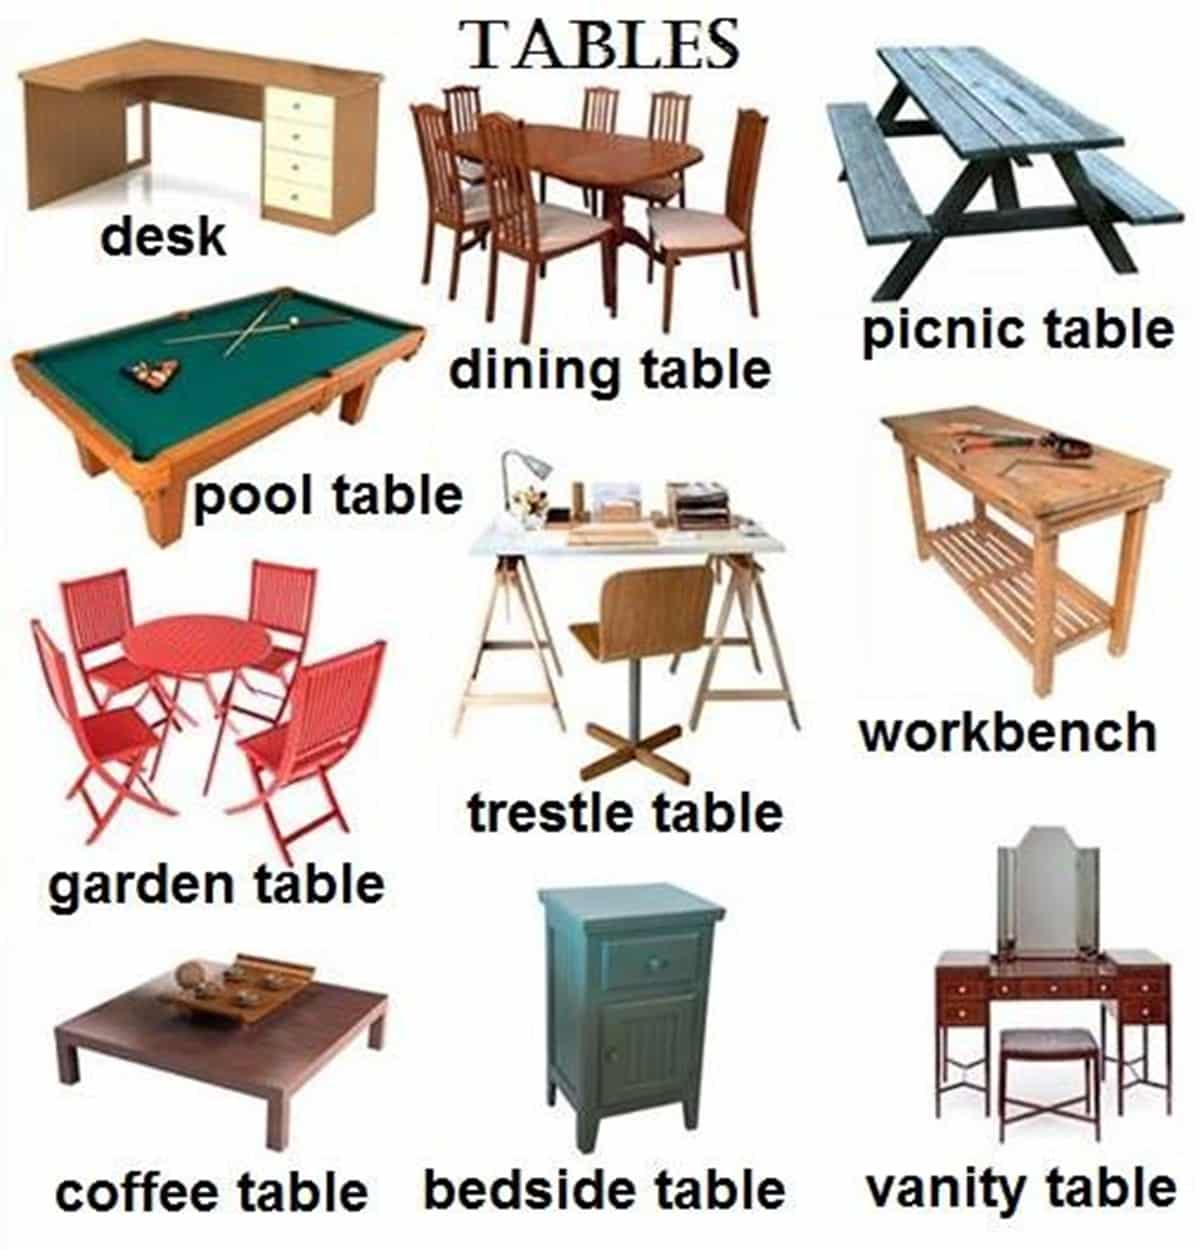 Furniture Vocabulary: 250+ Items Illustrated 22